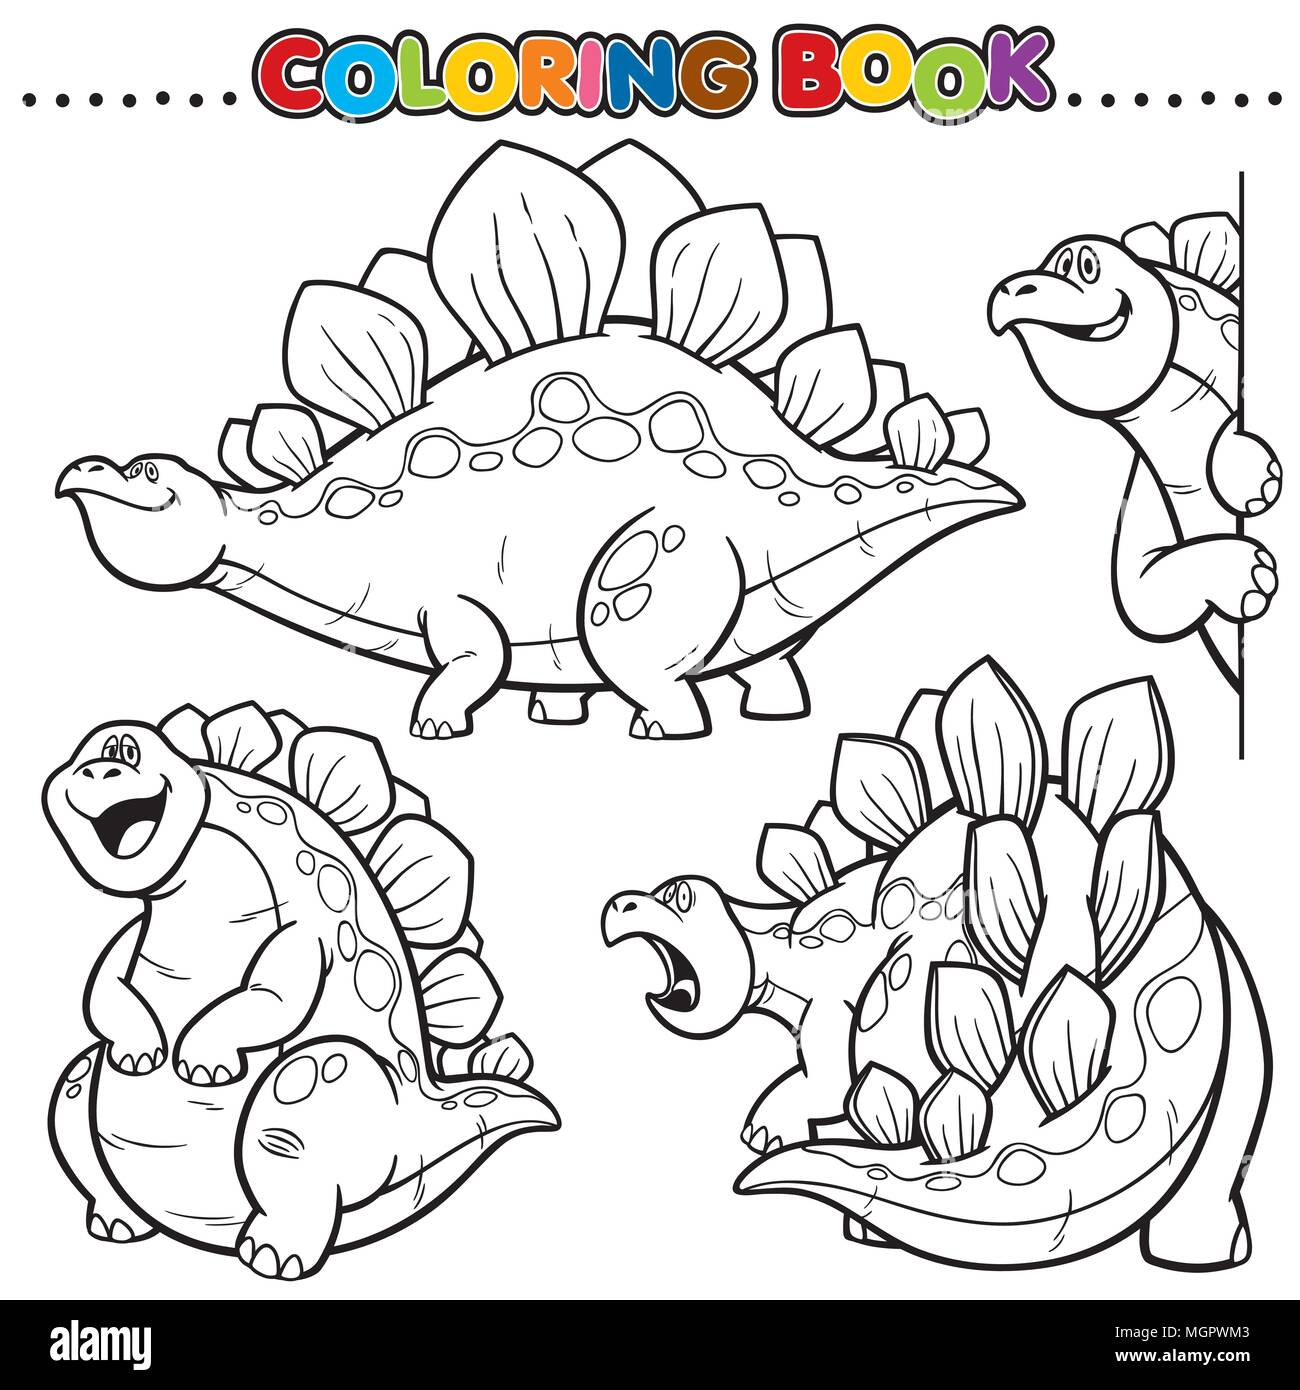 Cartoon Coloring Book - Dinosaurs Character Stock Vector Art ...